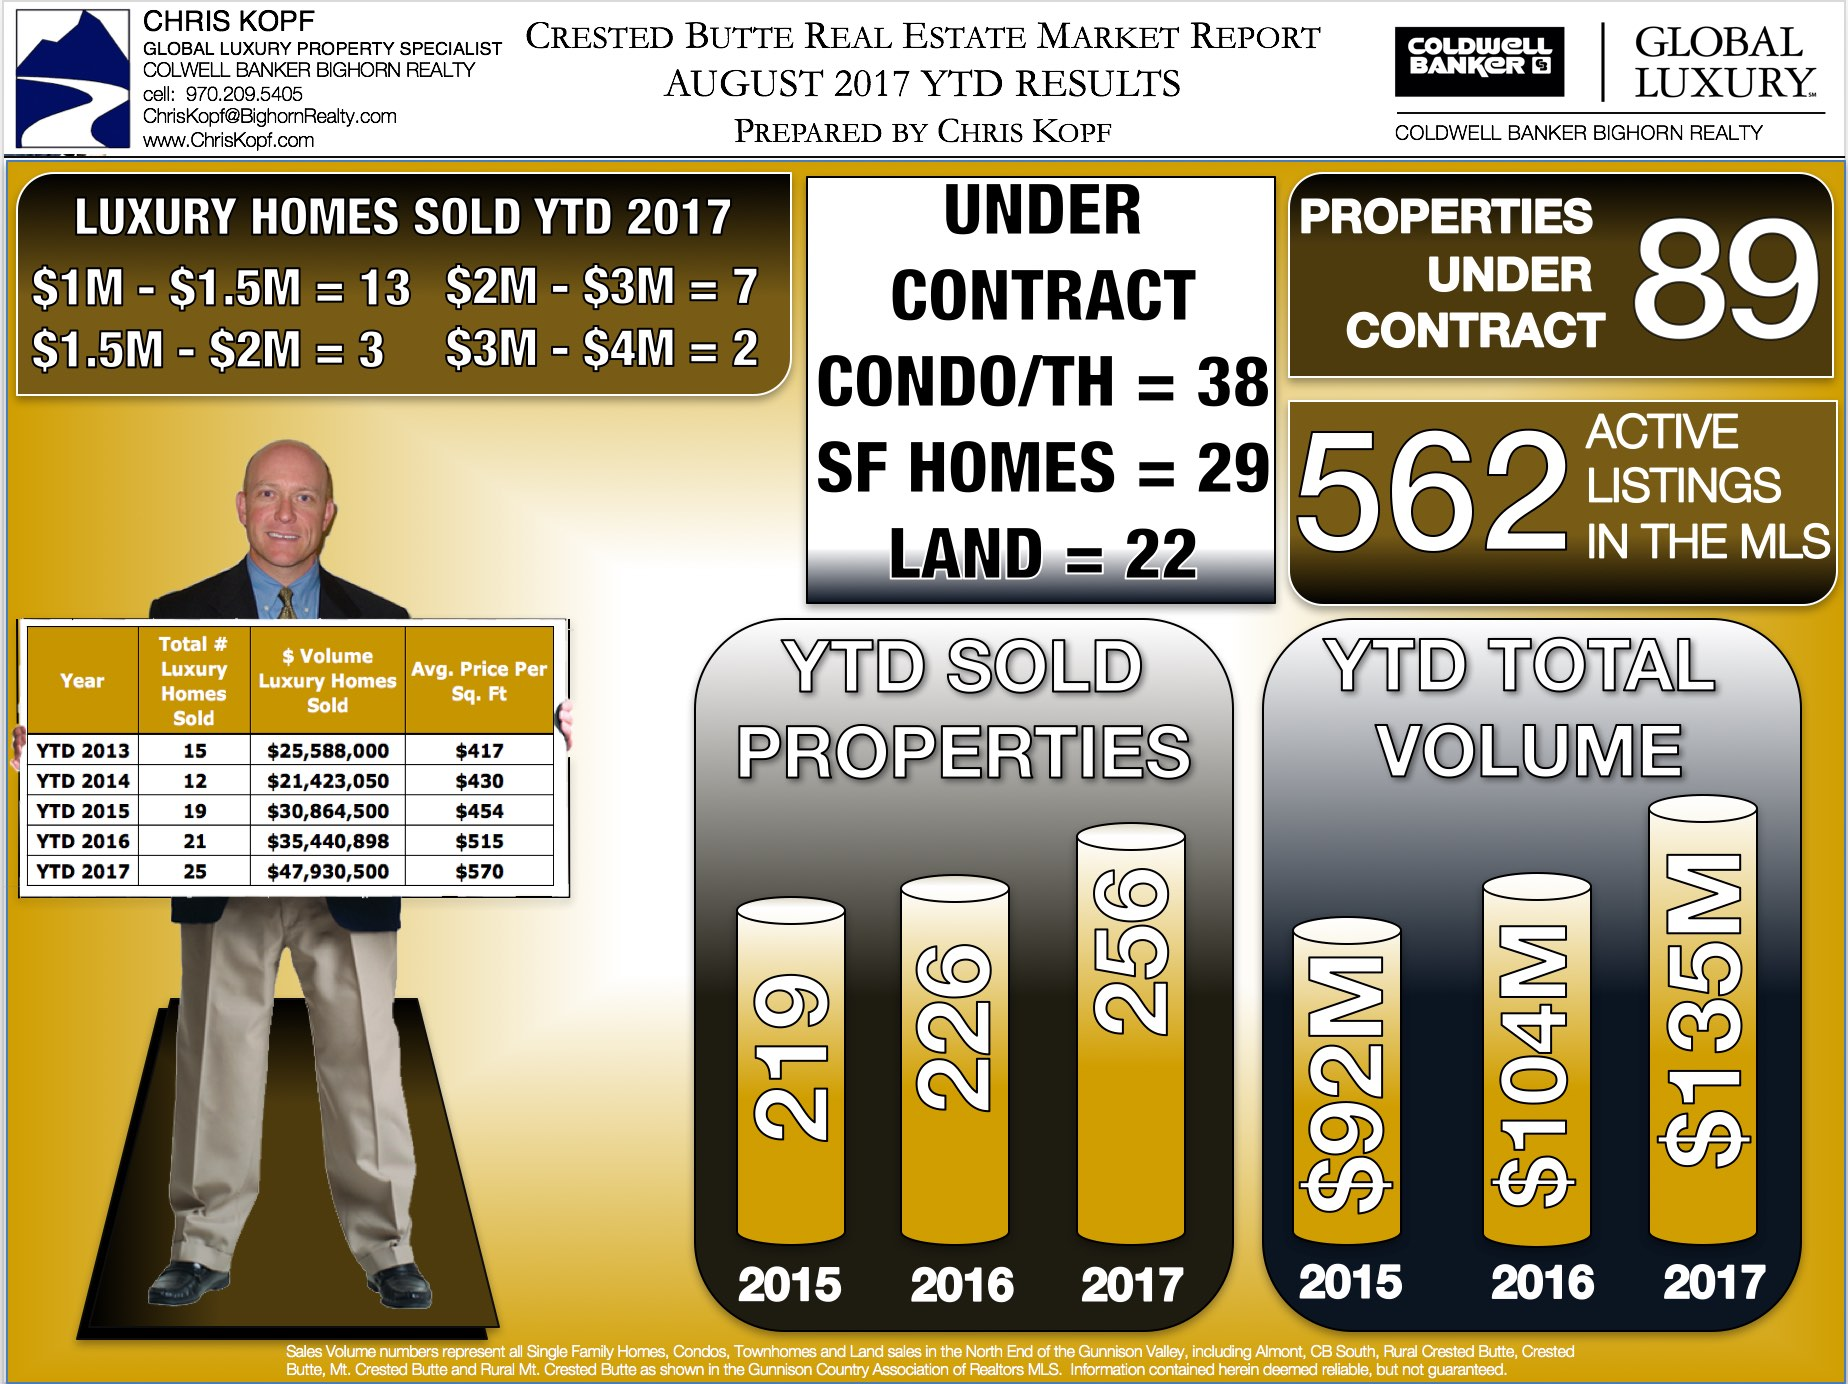 Crested Butte Real Estate Market Report August 2017